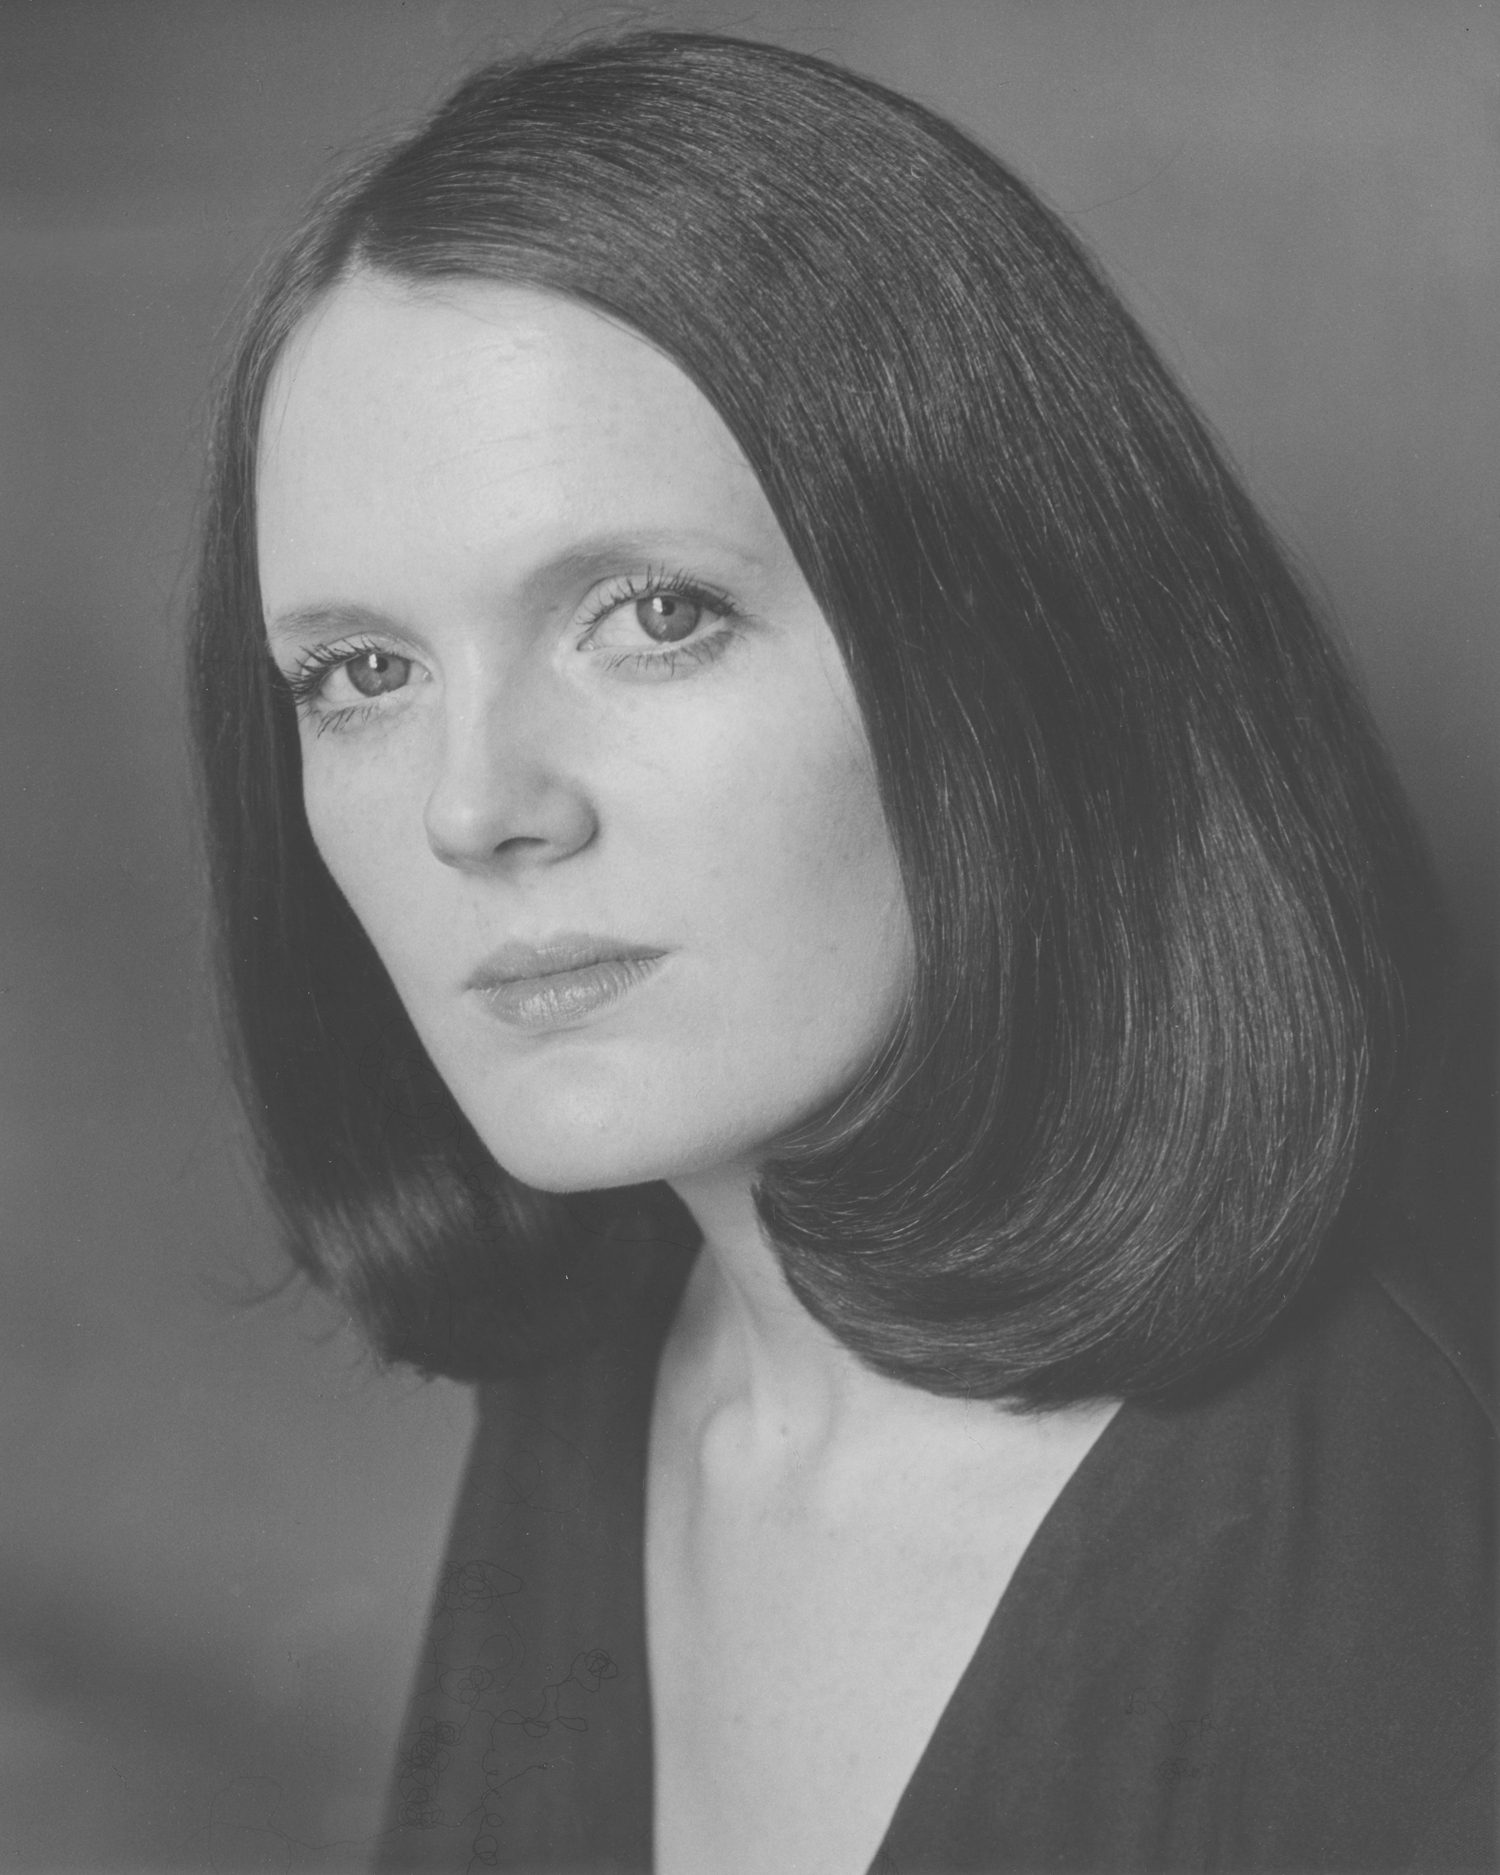 Acting head shot, 1973